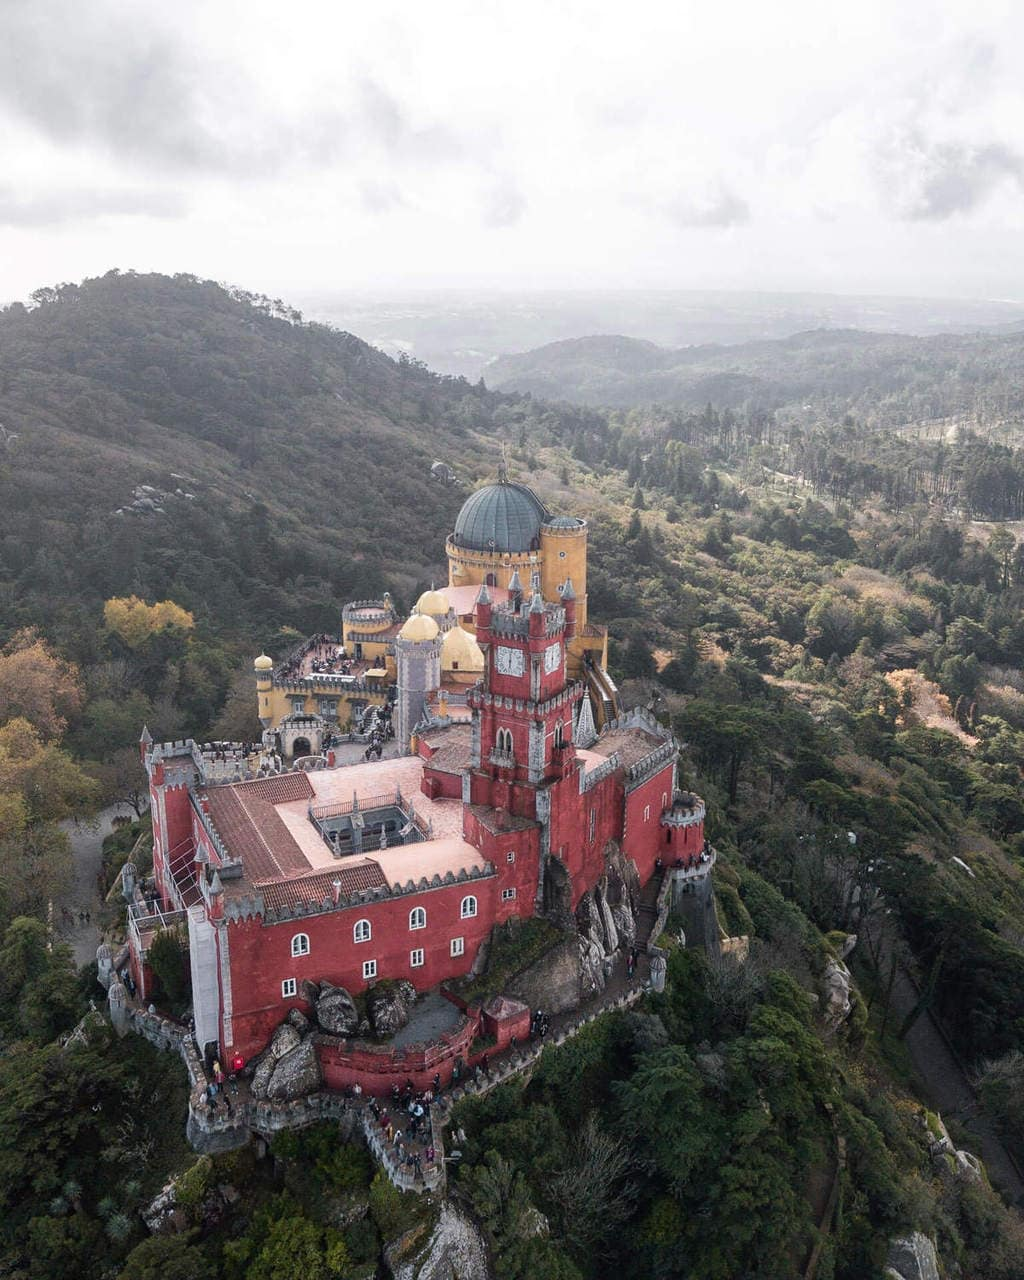 Drone shot with view from above Pena Palace in Sintra, Portugal on a Lisbon to Sintra day trip